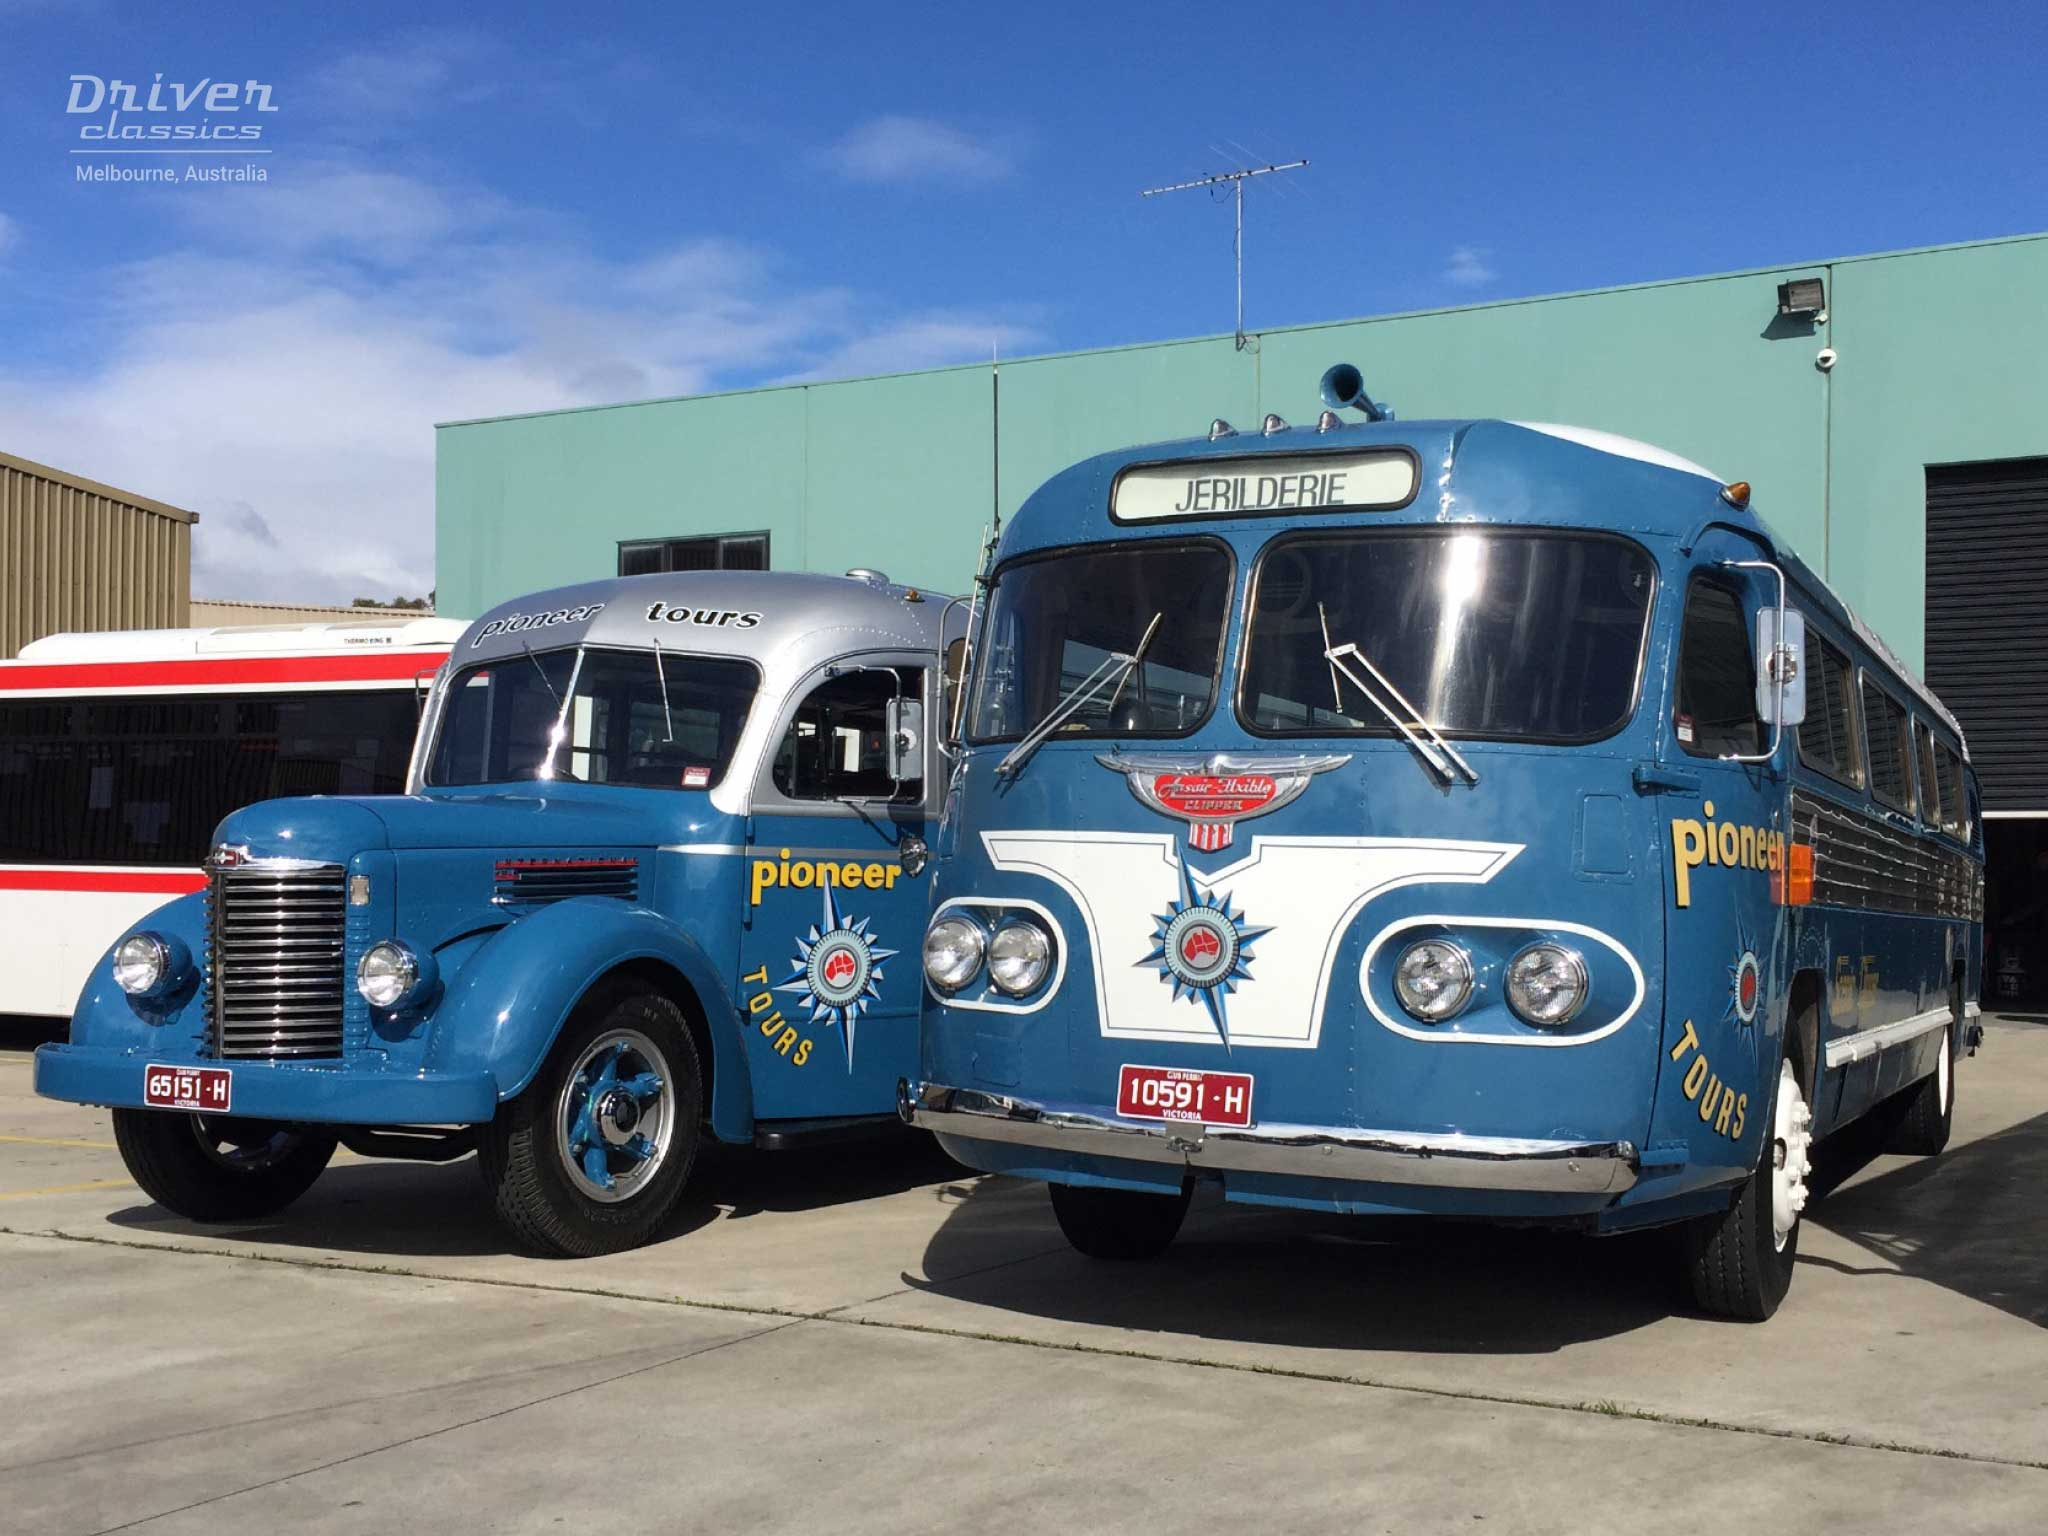 1954 Flxible Clipper and 1946 International KB6  / Ansair Roadcruiser at Moonee Valley Bus Lines, august 2016